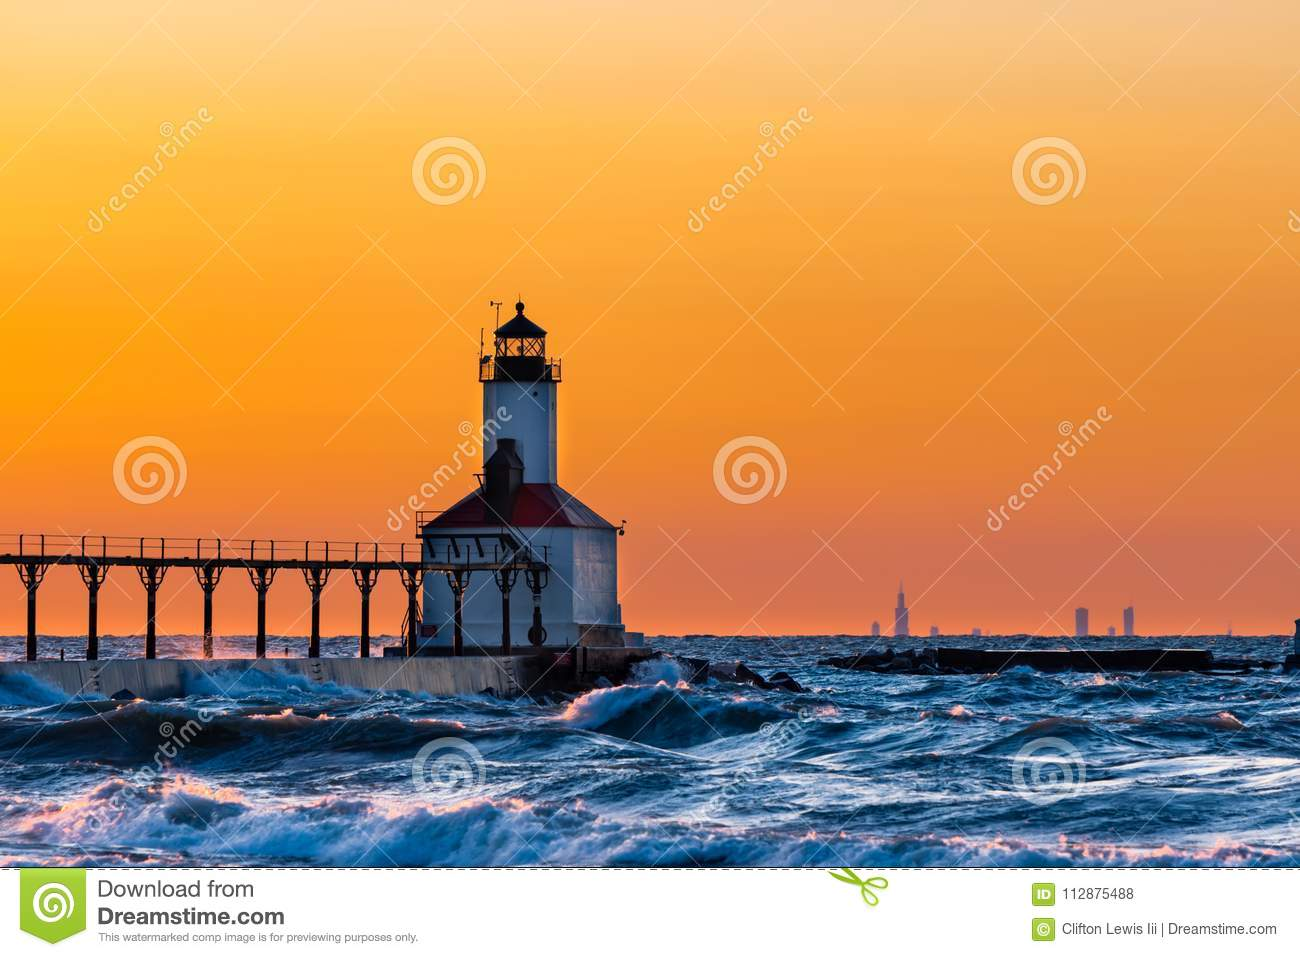 Michigan City, Indiana / USA : 03/23/2018 / Washington Park Lighthouse bathed in a beautiful sunset with Chicago looking over her